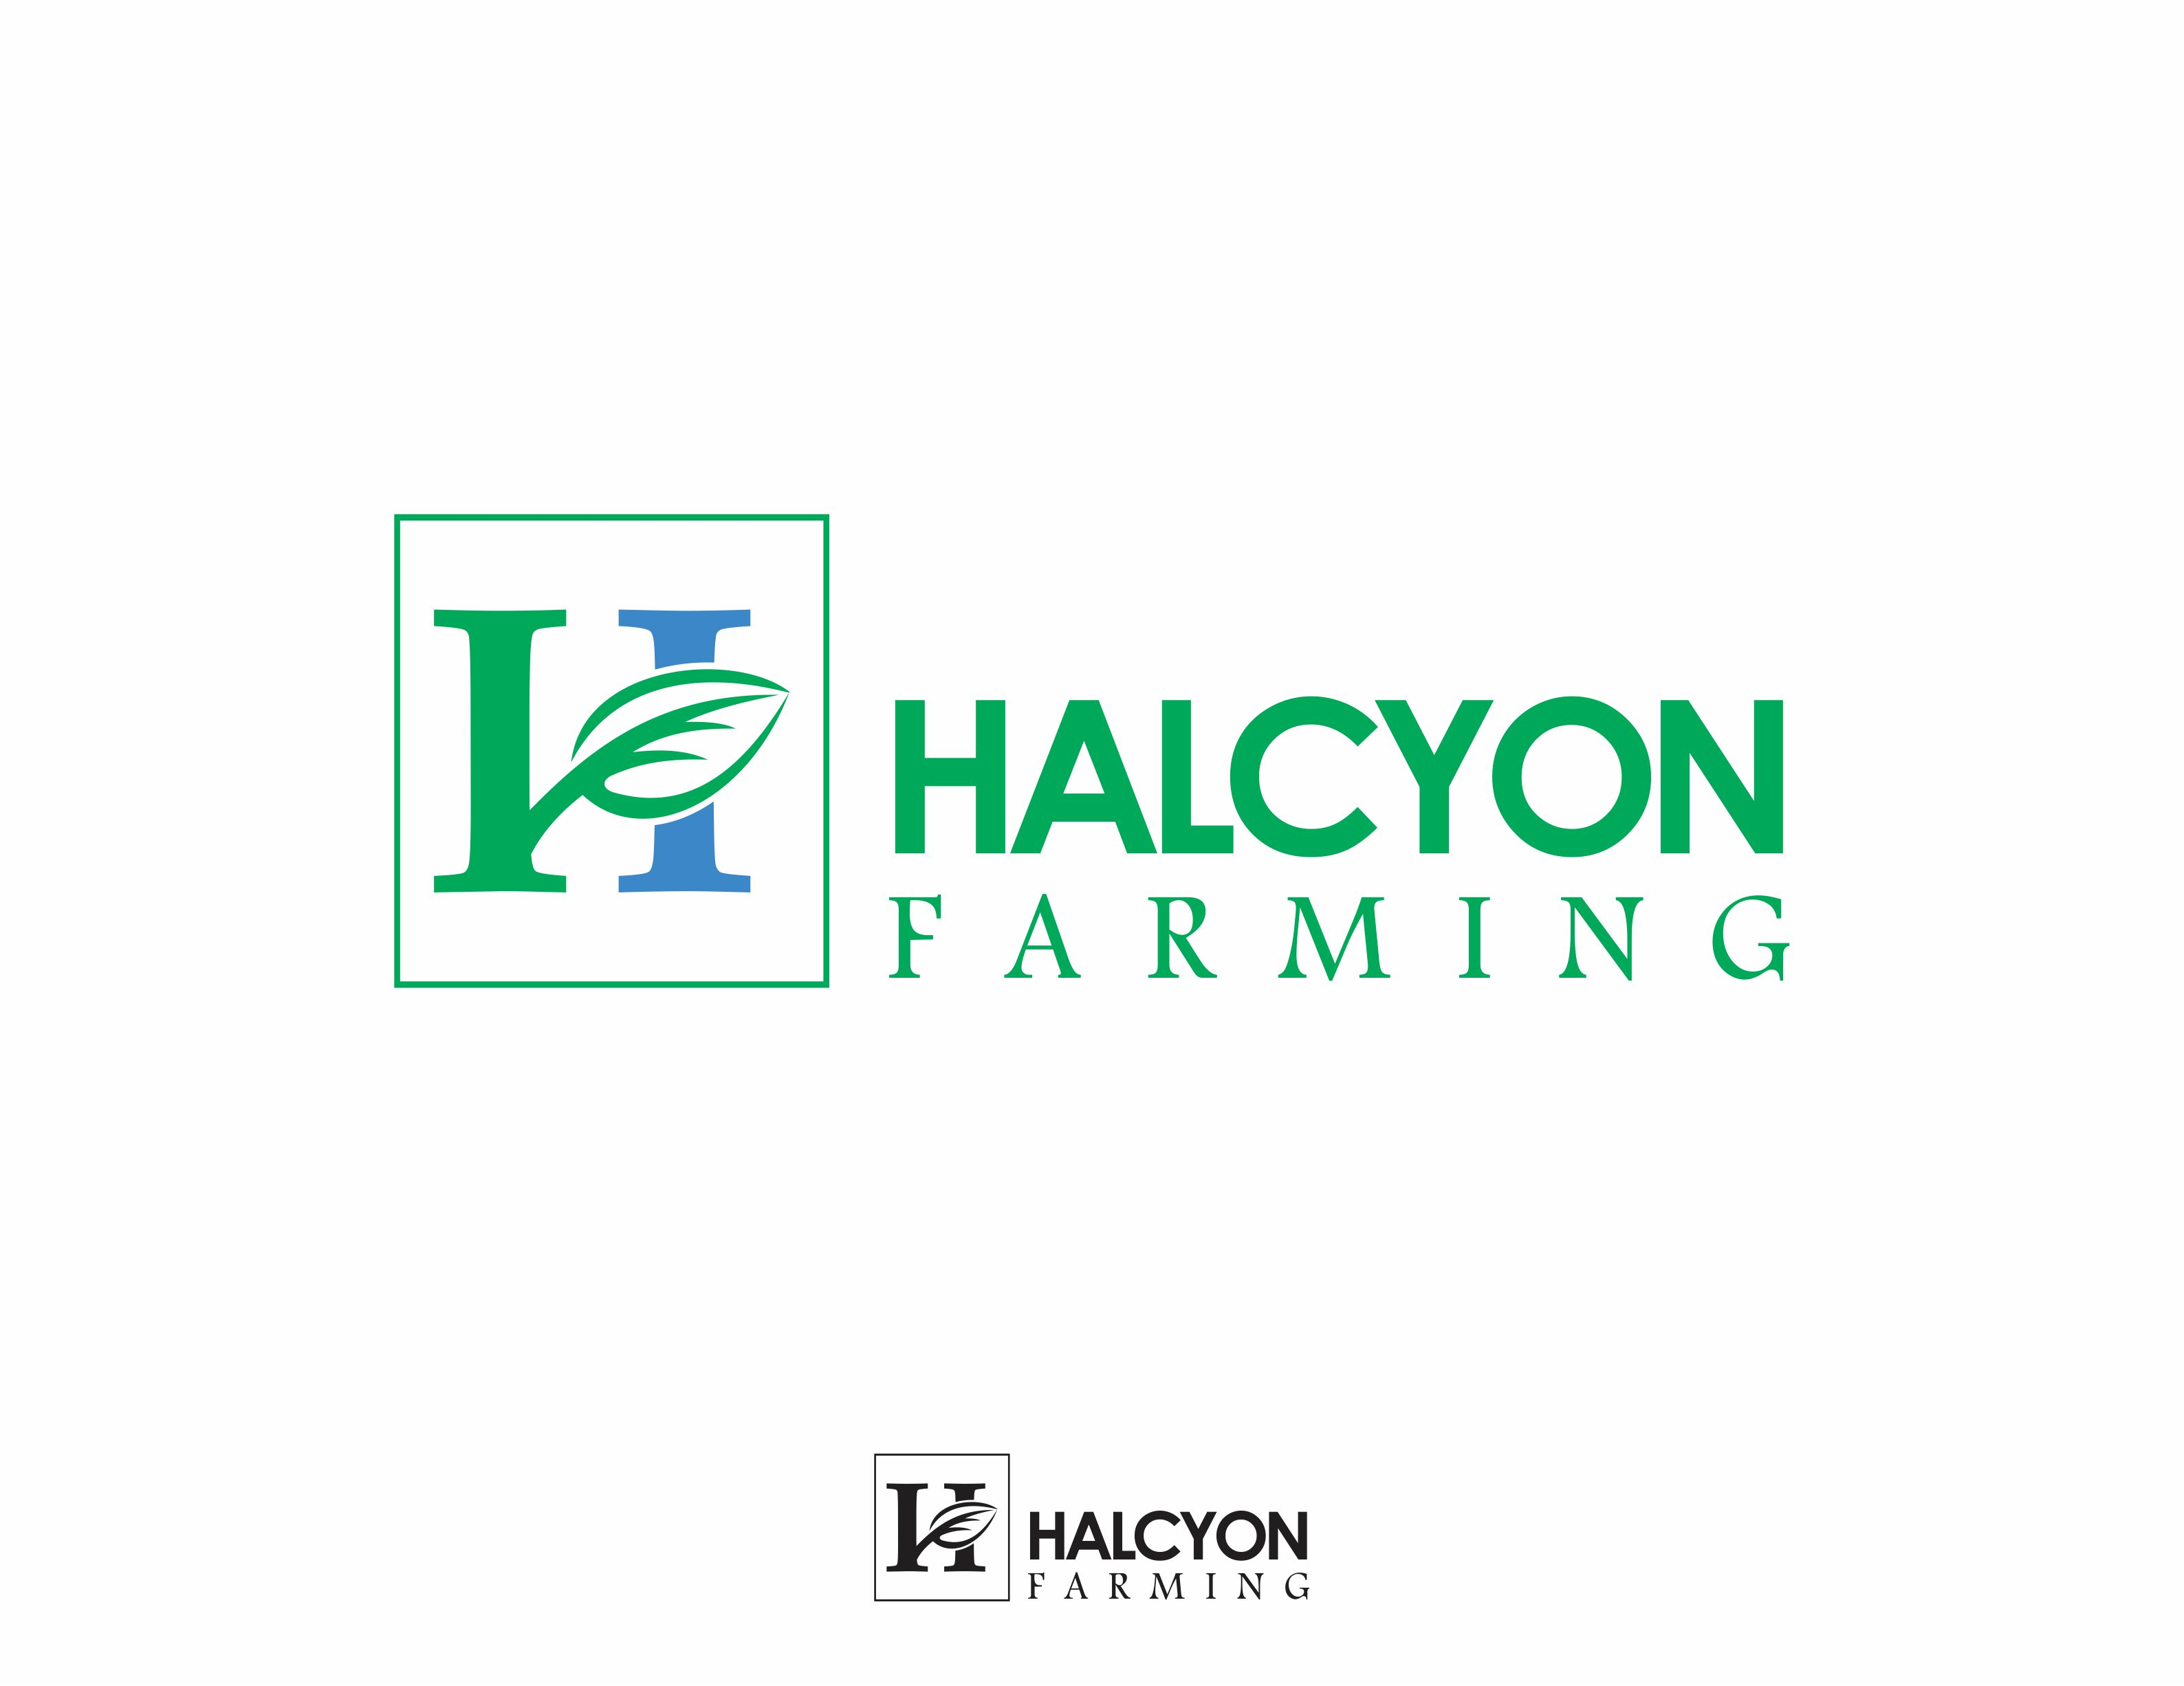 Logo Design by Dian Jatmiko - Entry No. 106 in the Logo Design Contest Creative Logo Design for Halcyon Farming.